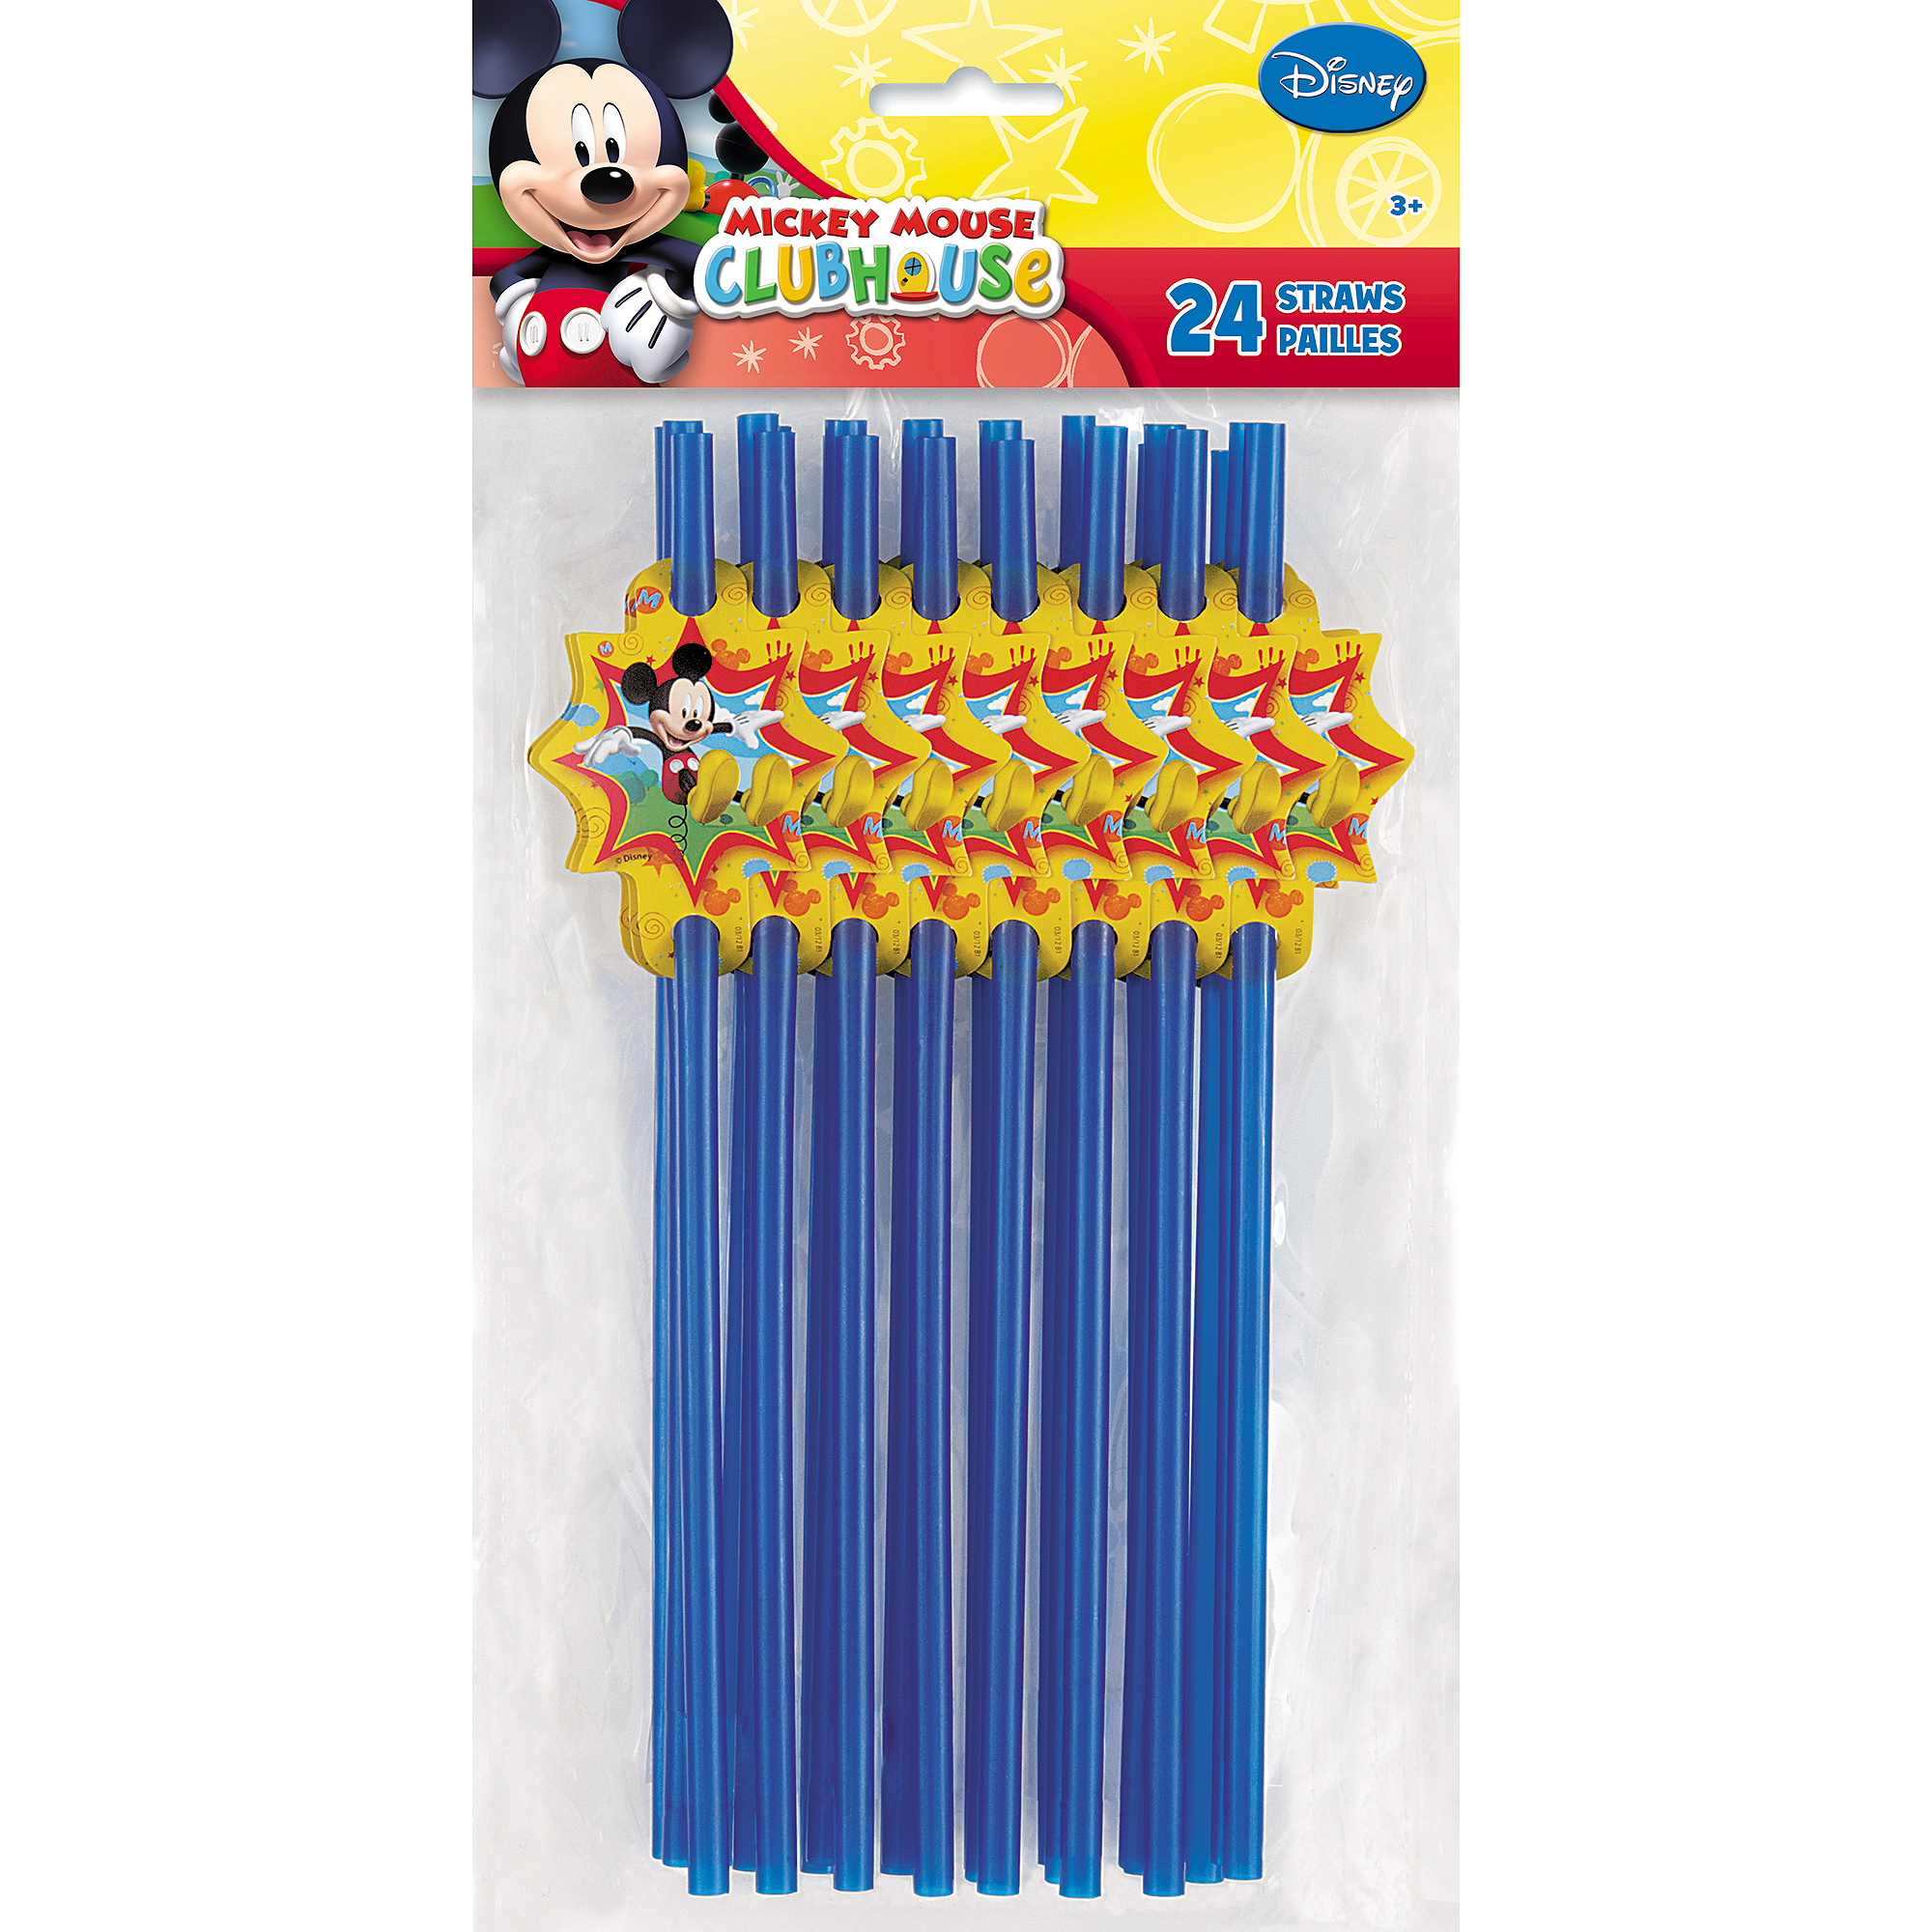 Mickey Mouse Clubhouse Party Straws, 24ct